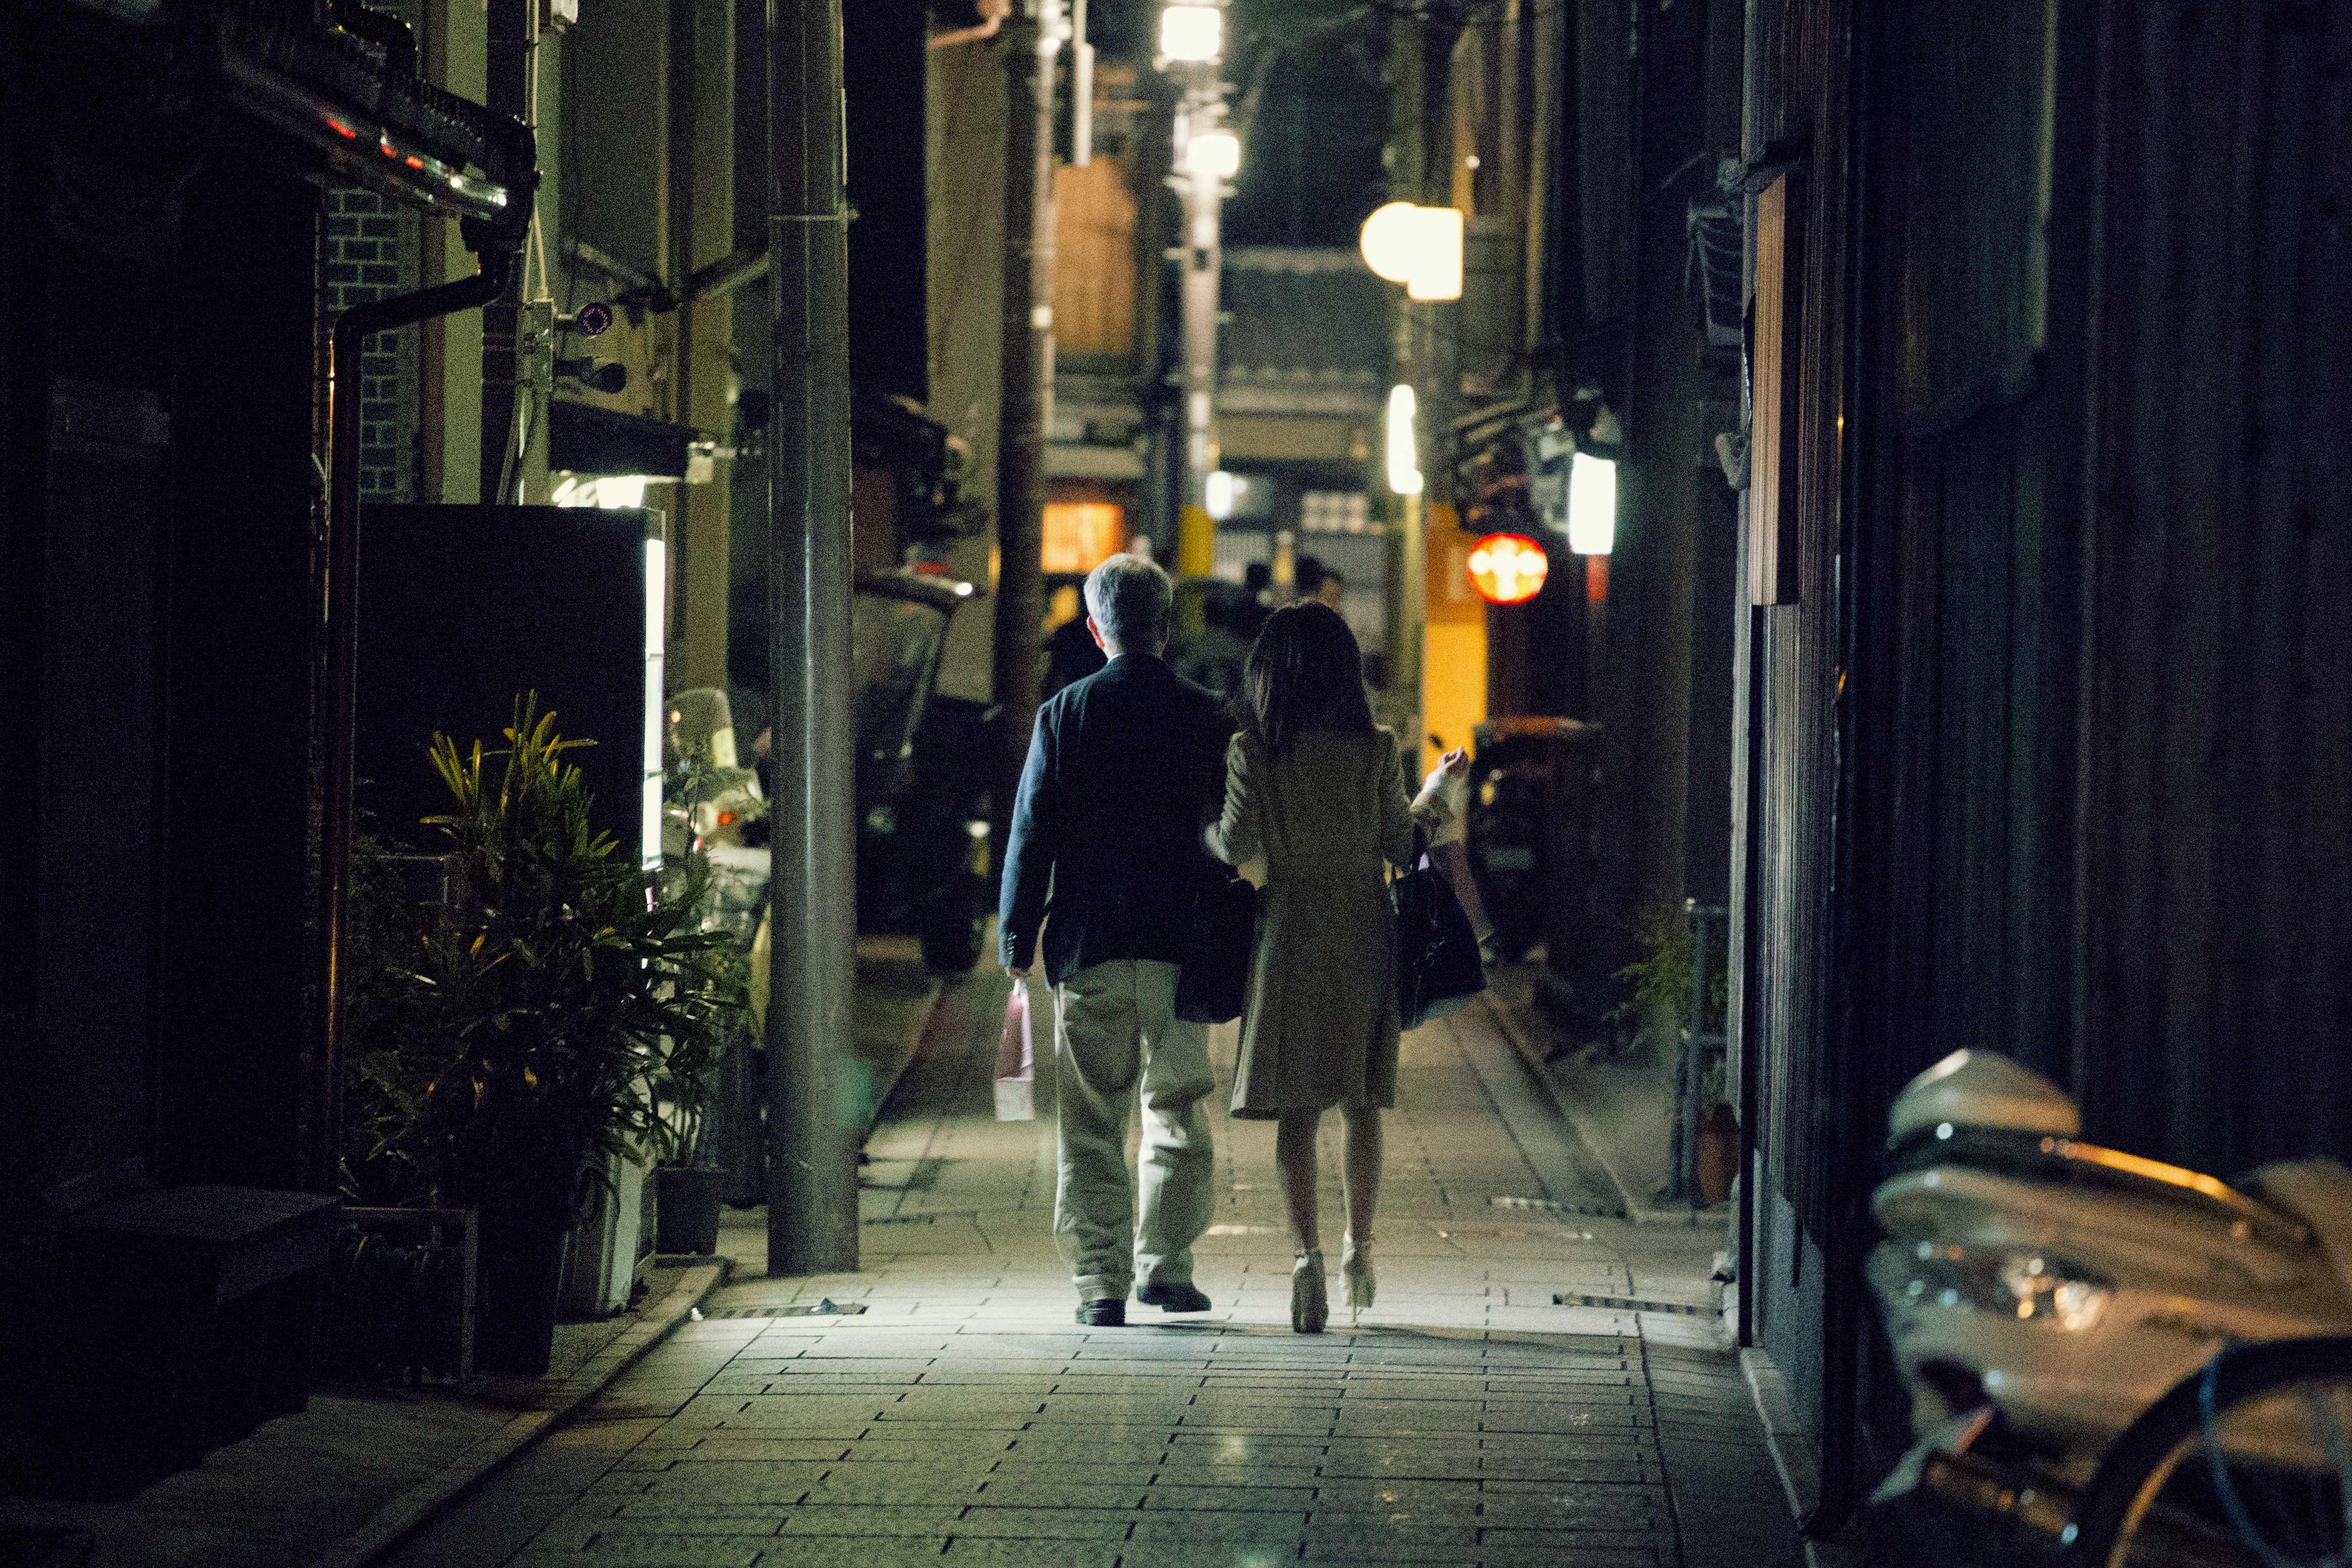 Kyoto date night photo